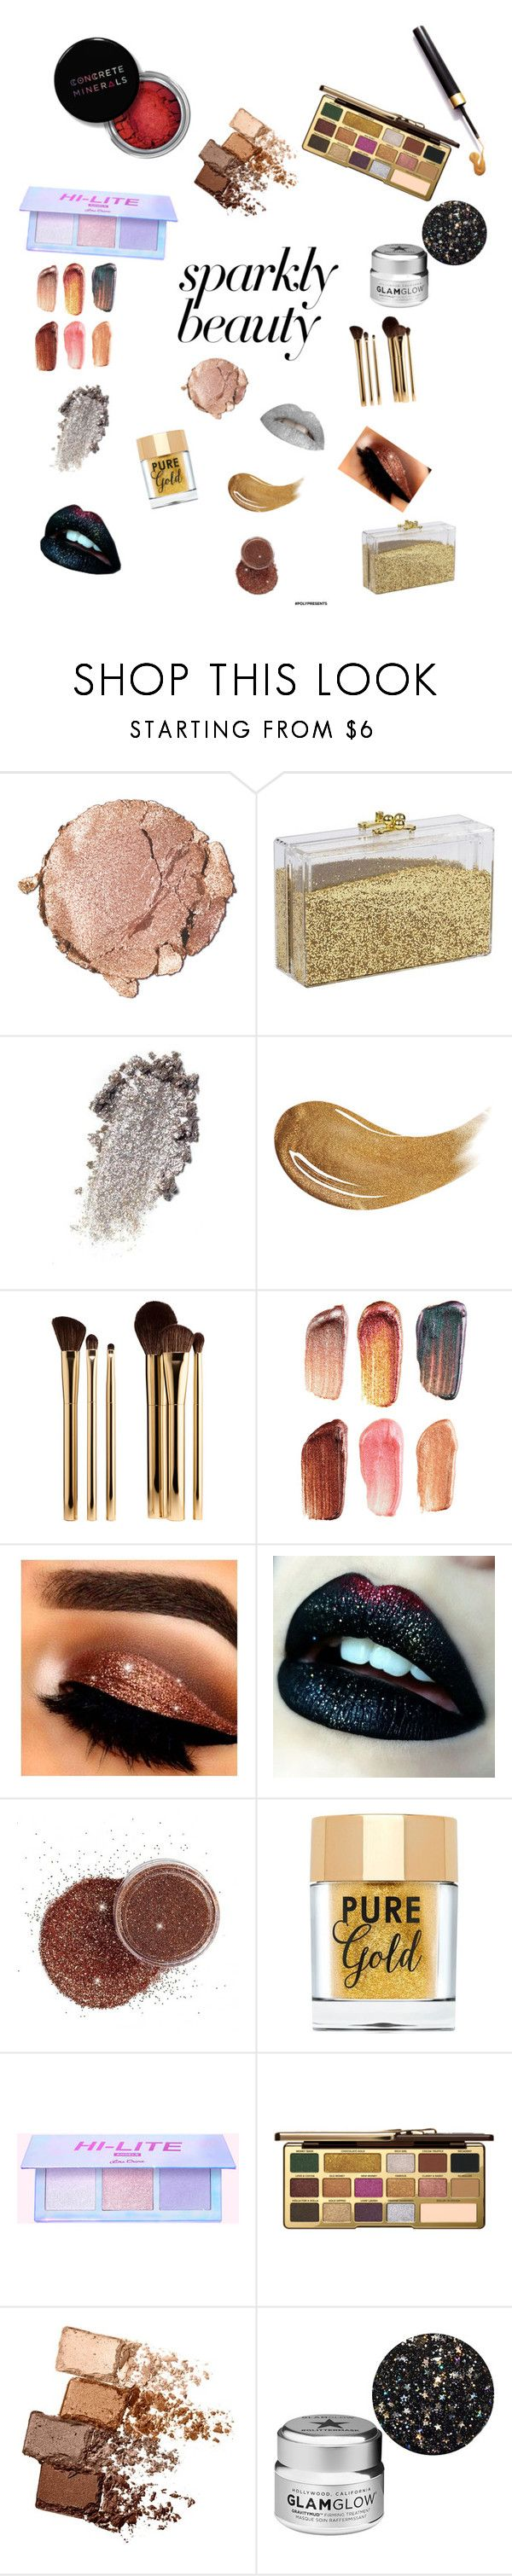 """#PolyPresents: Sparkly Beauty"" by judas-plutos ❤ liked on Polyvore featuring beauty, Stila, Too Faced Cosmetics, Sephora Collection, Bite, Maybelline, GlamGlow, Concrete Minerals, contestentry and polyPresents"